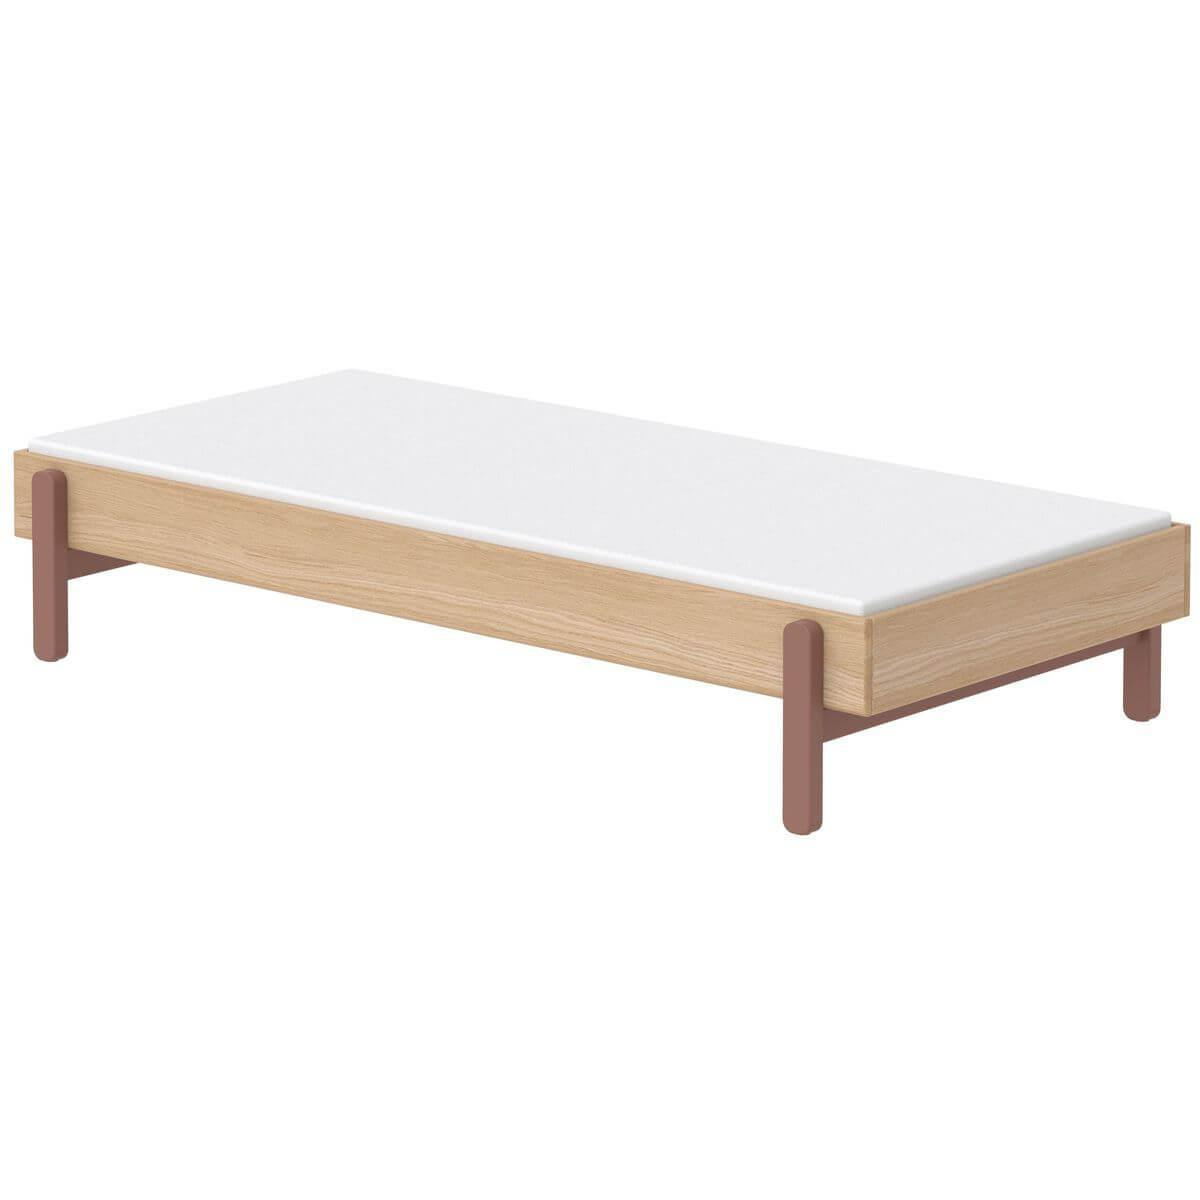 Cama individual 90x200cm POPSICLE Flexa roble-cherry